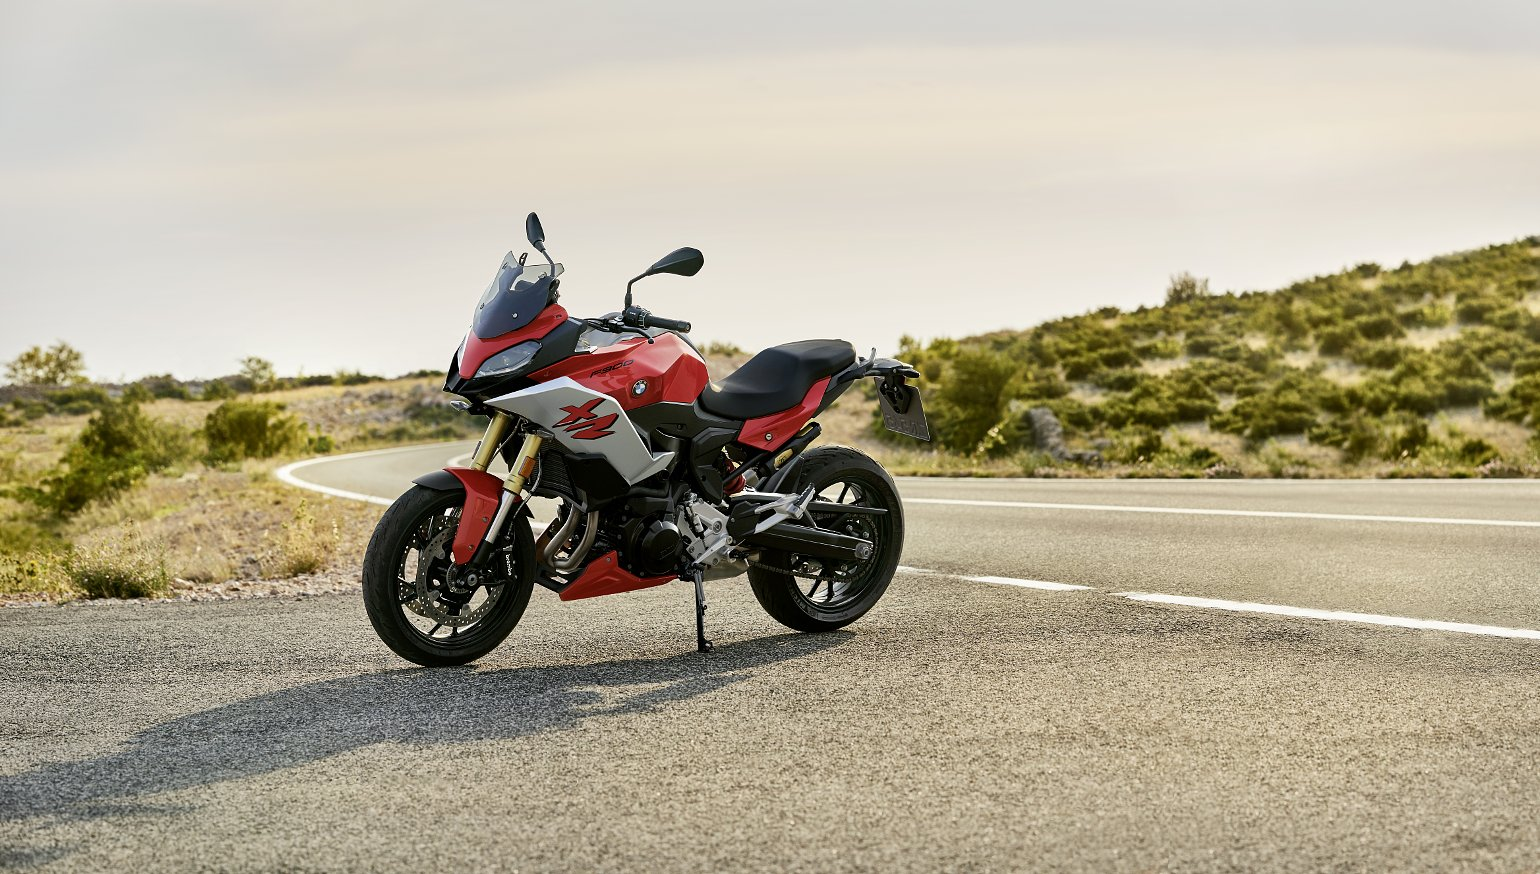 BMW S 1000 XR, F 900 R, and F 900 XR first look